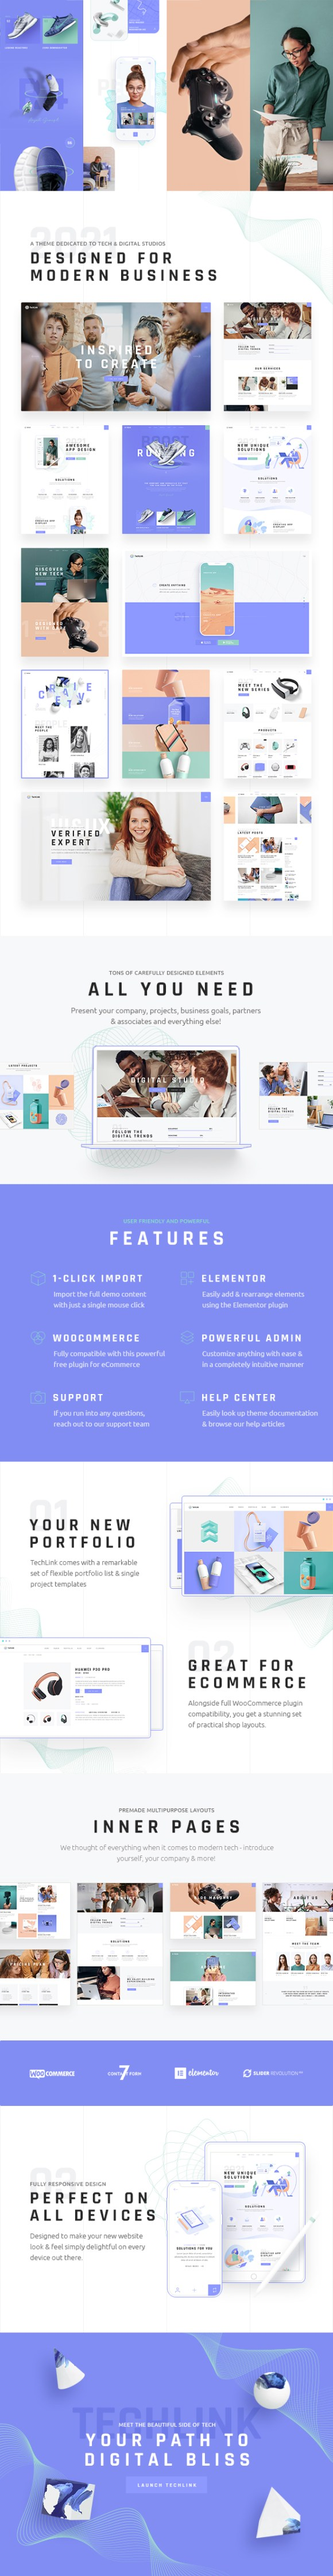 TechLink - Technology and IT Solutions Theme - 2